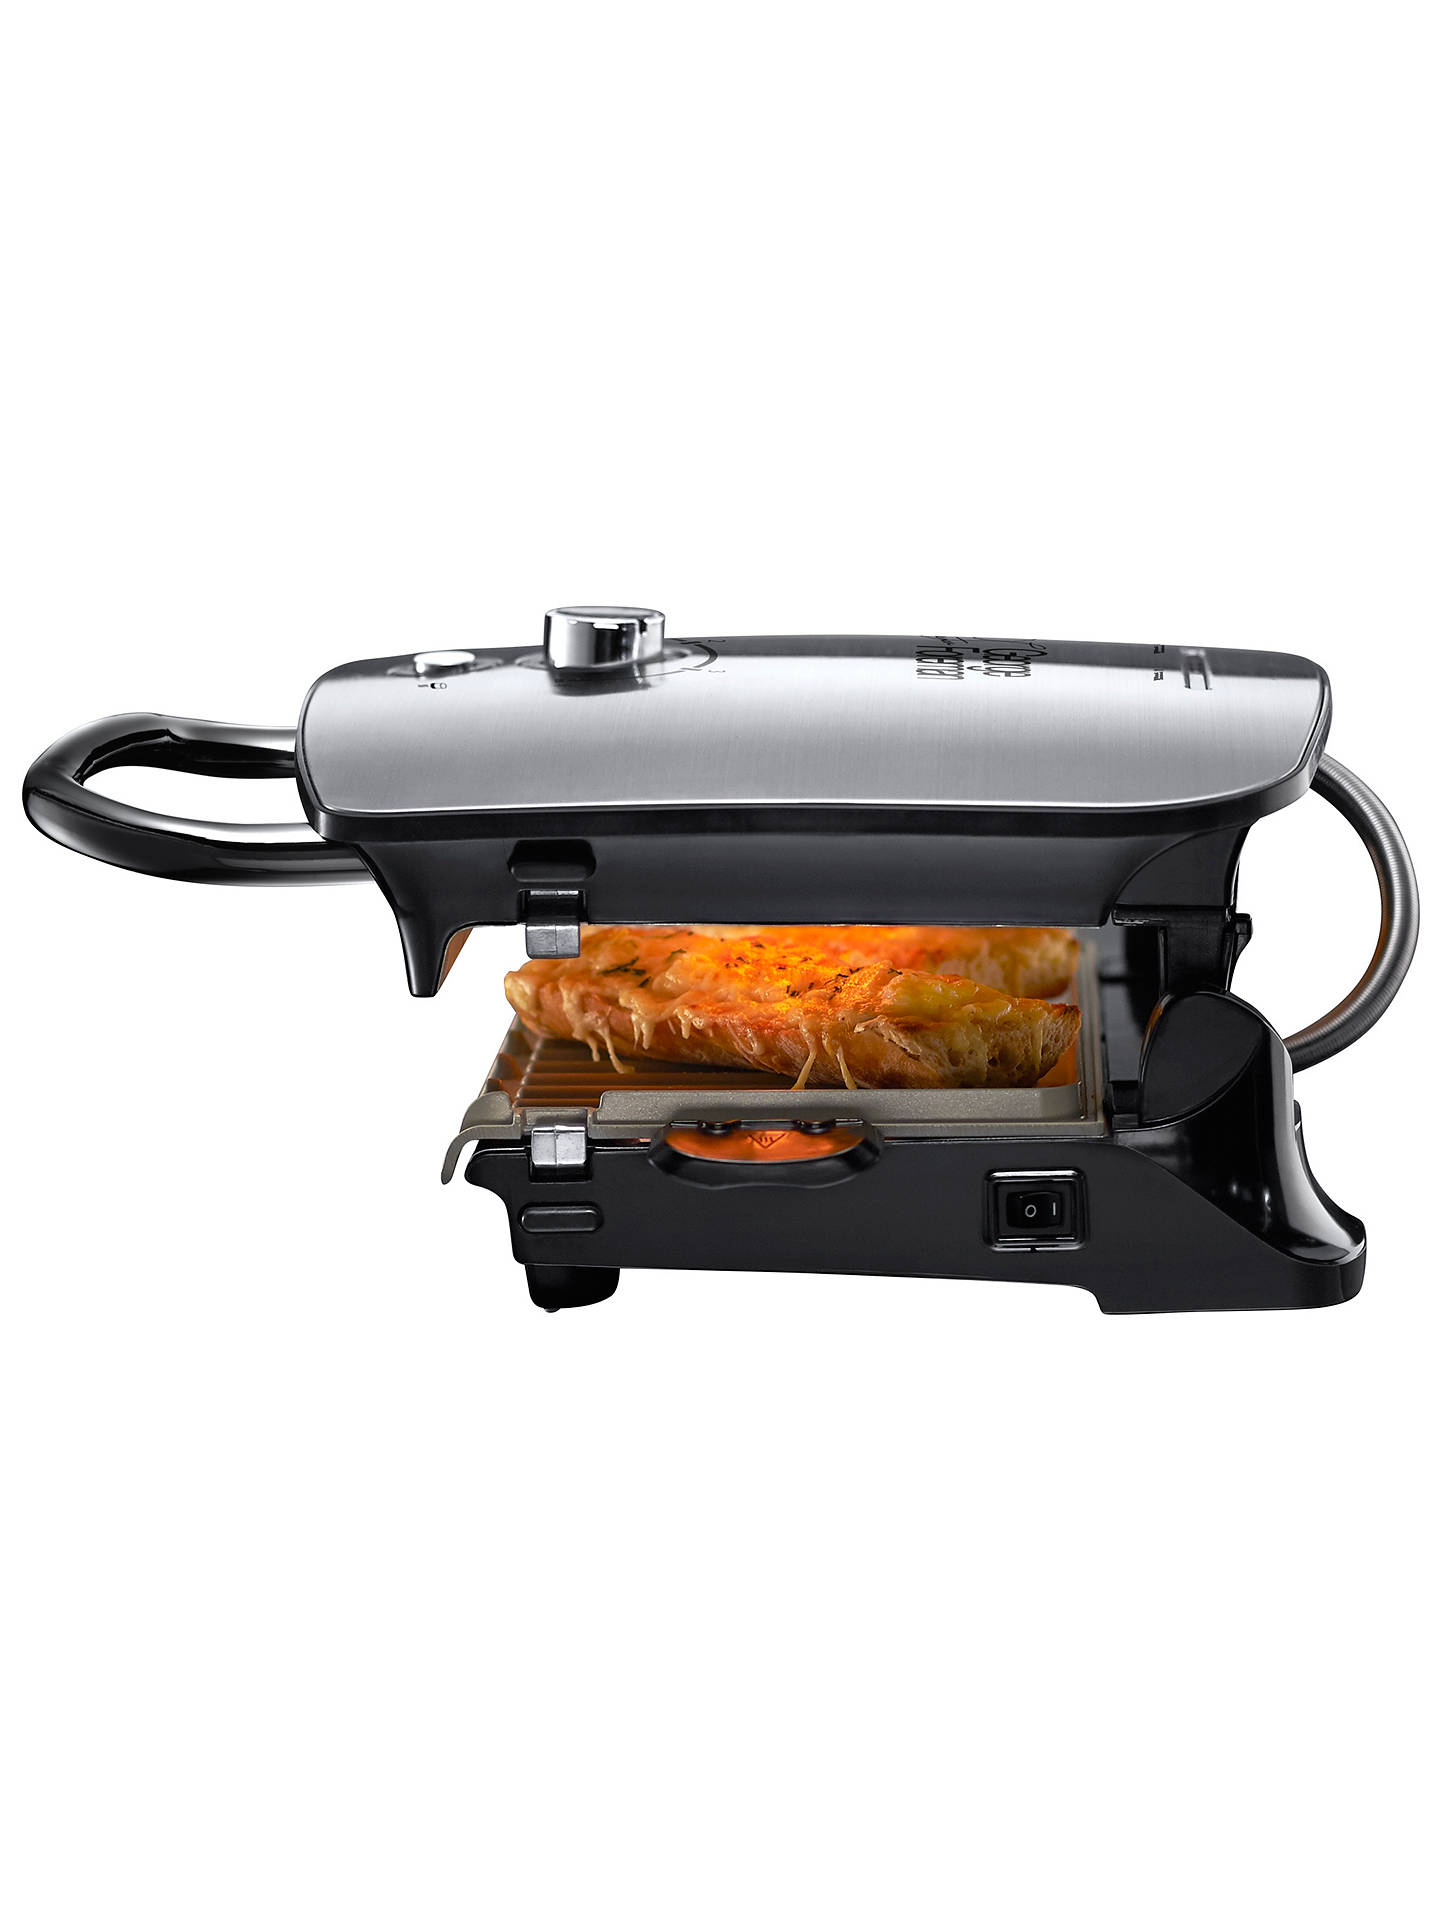 BuyGeorge Foreman 22160 Grill and Melt Advanced Online at johnlewis.com